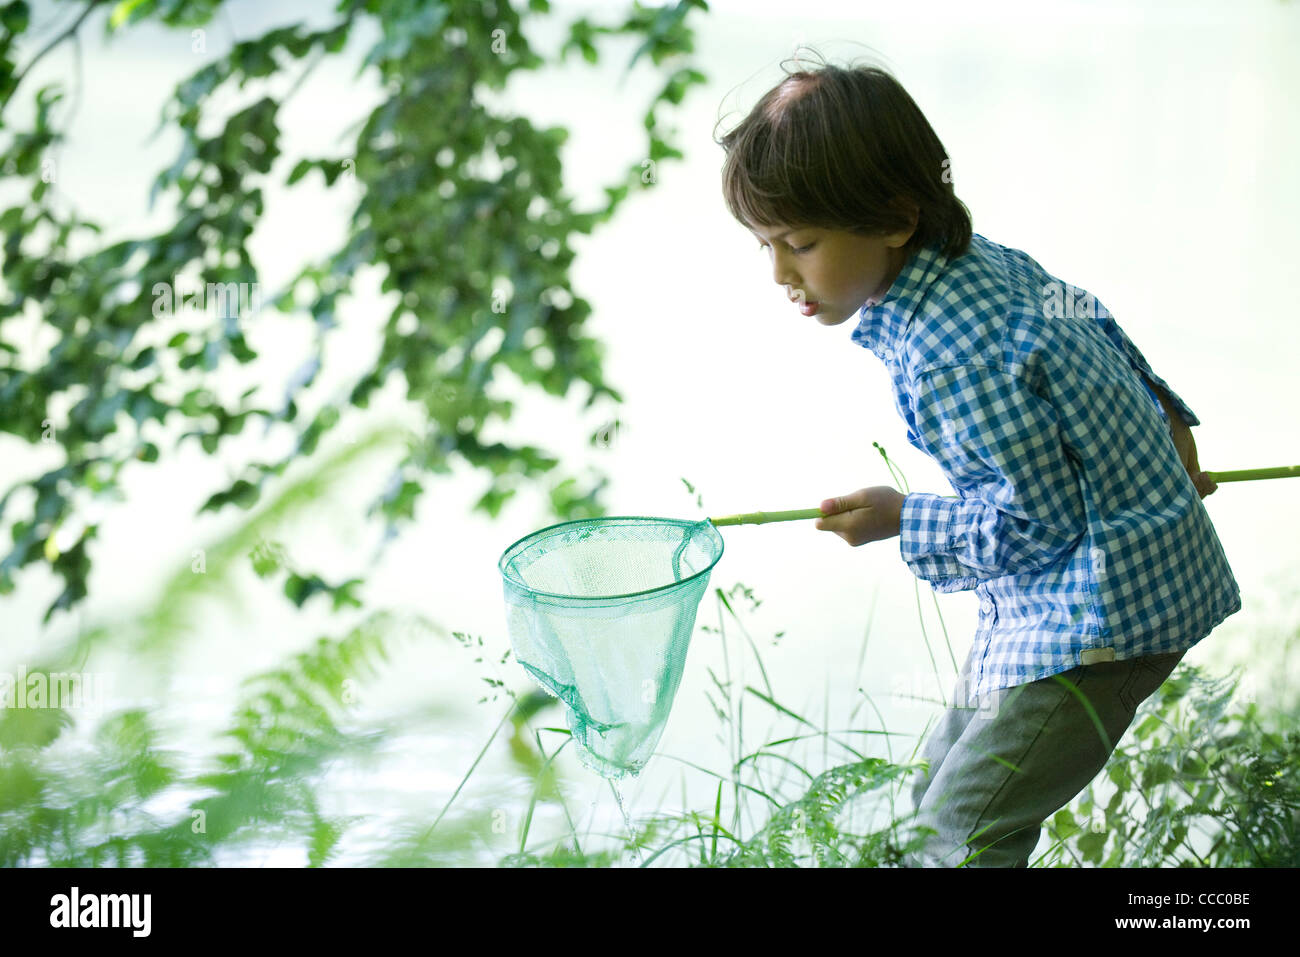 Boy catching tadpoles at water's edge - Stock Image